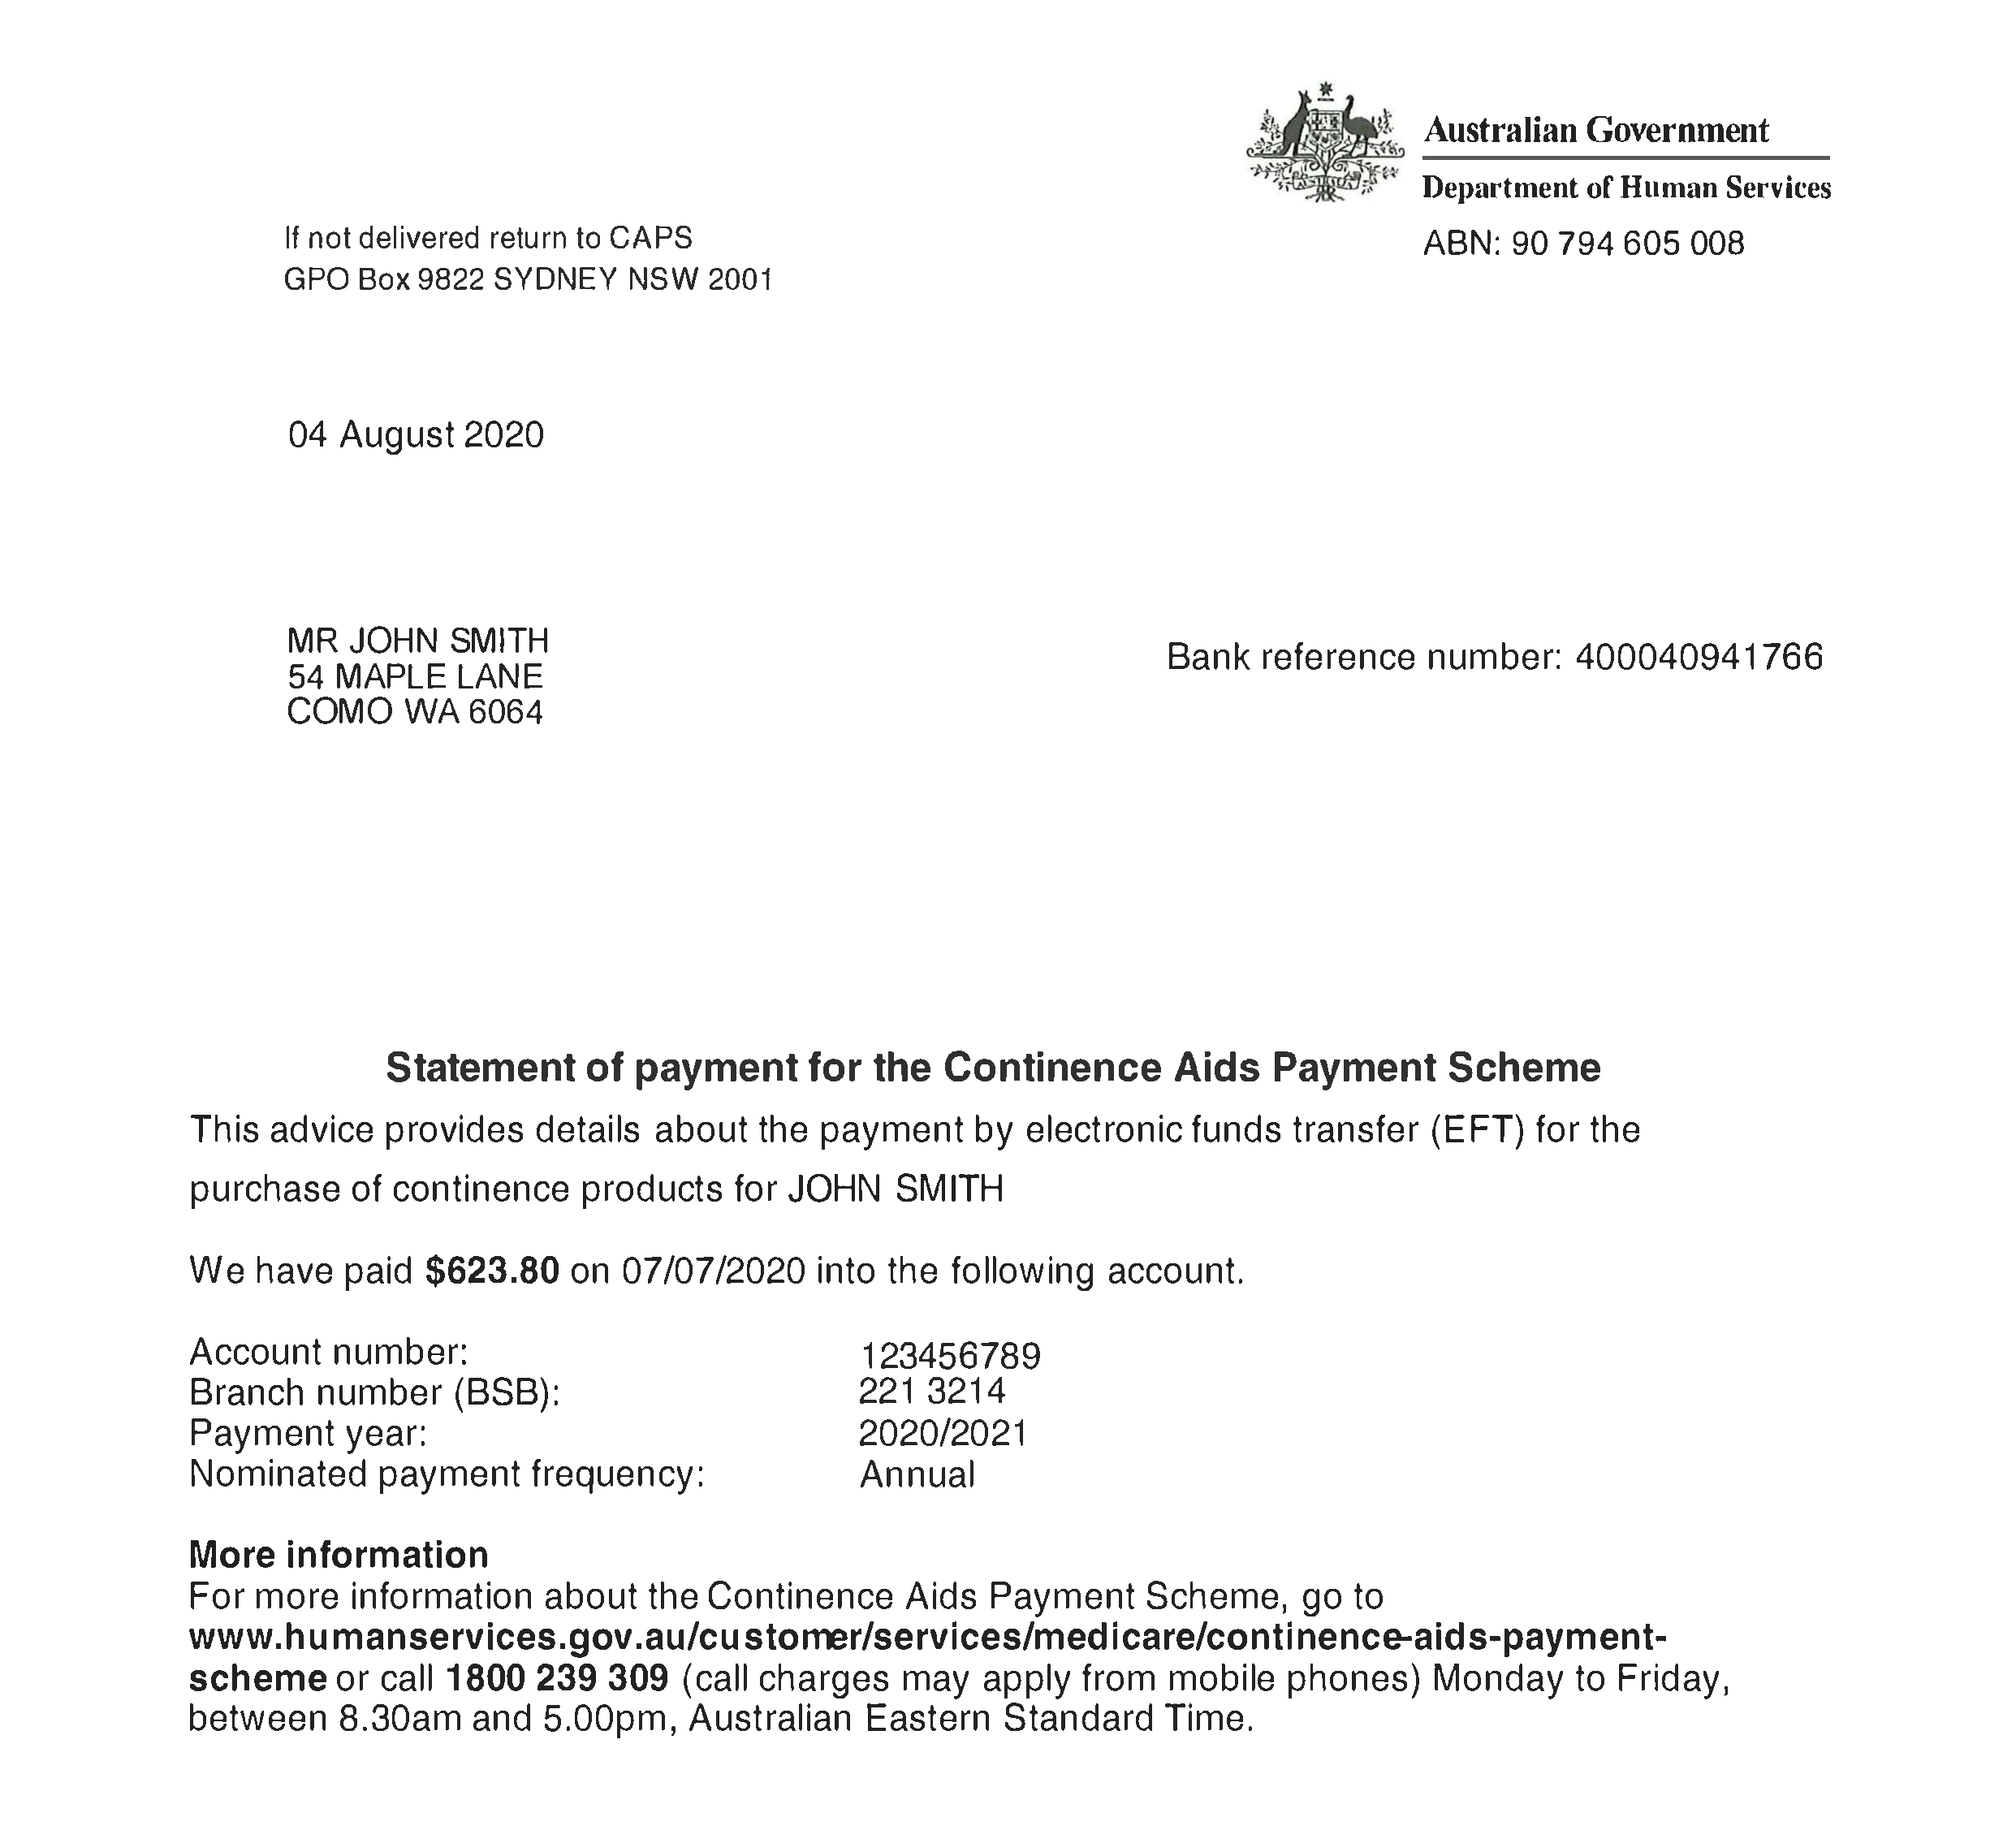 Sample CAPS Statement of Payment